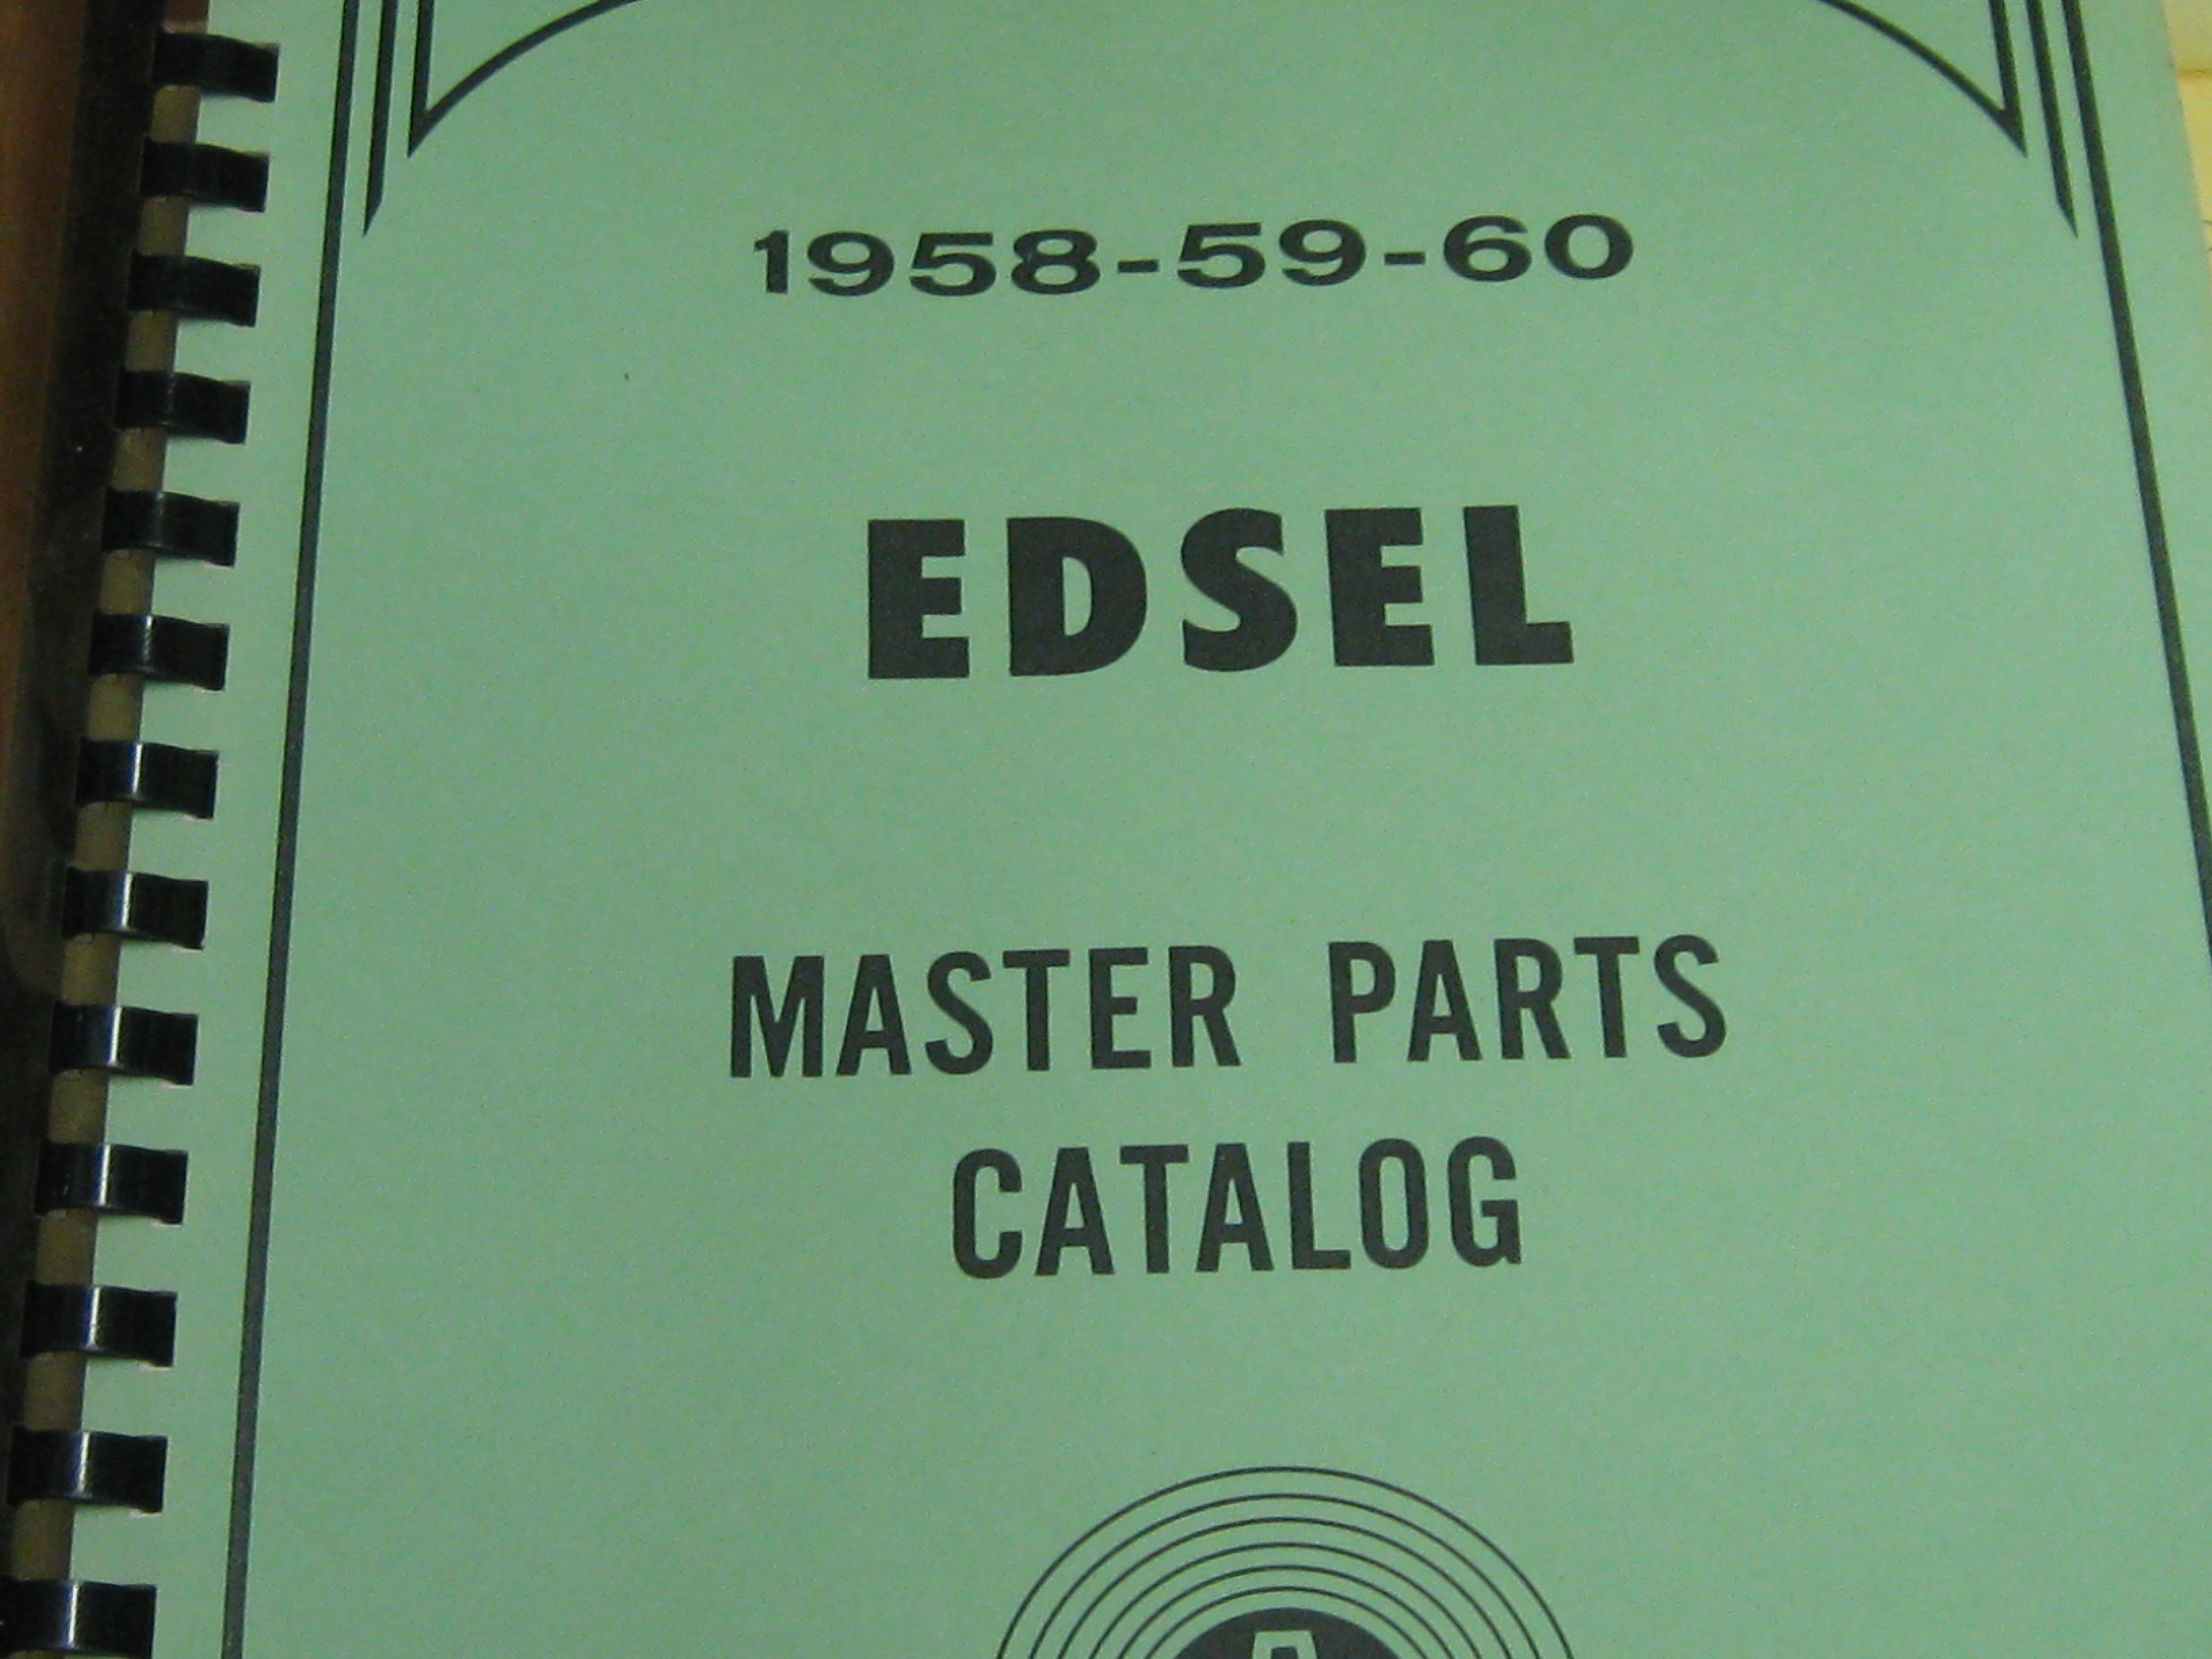 Then And Now Automotive 1958 1959 1960 Edsel Master Parts Catalog